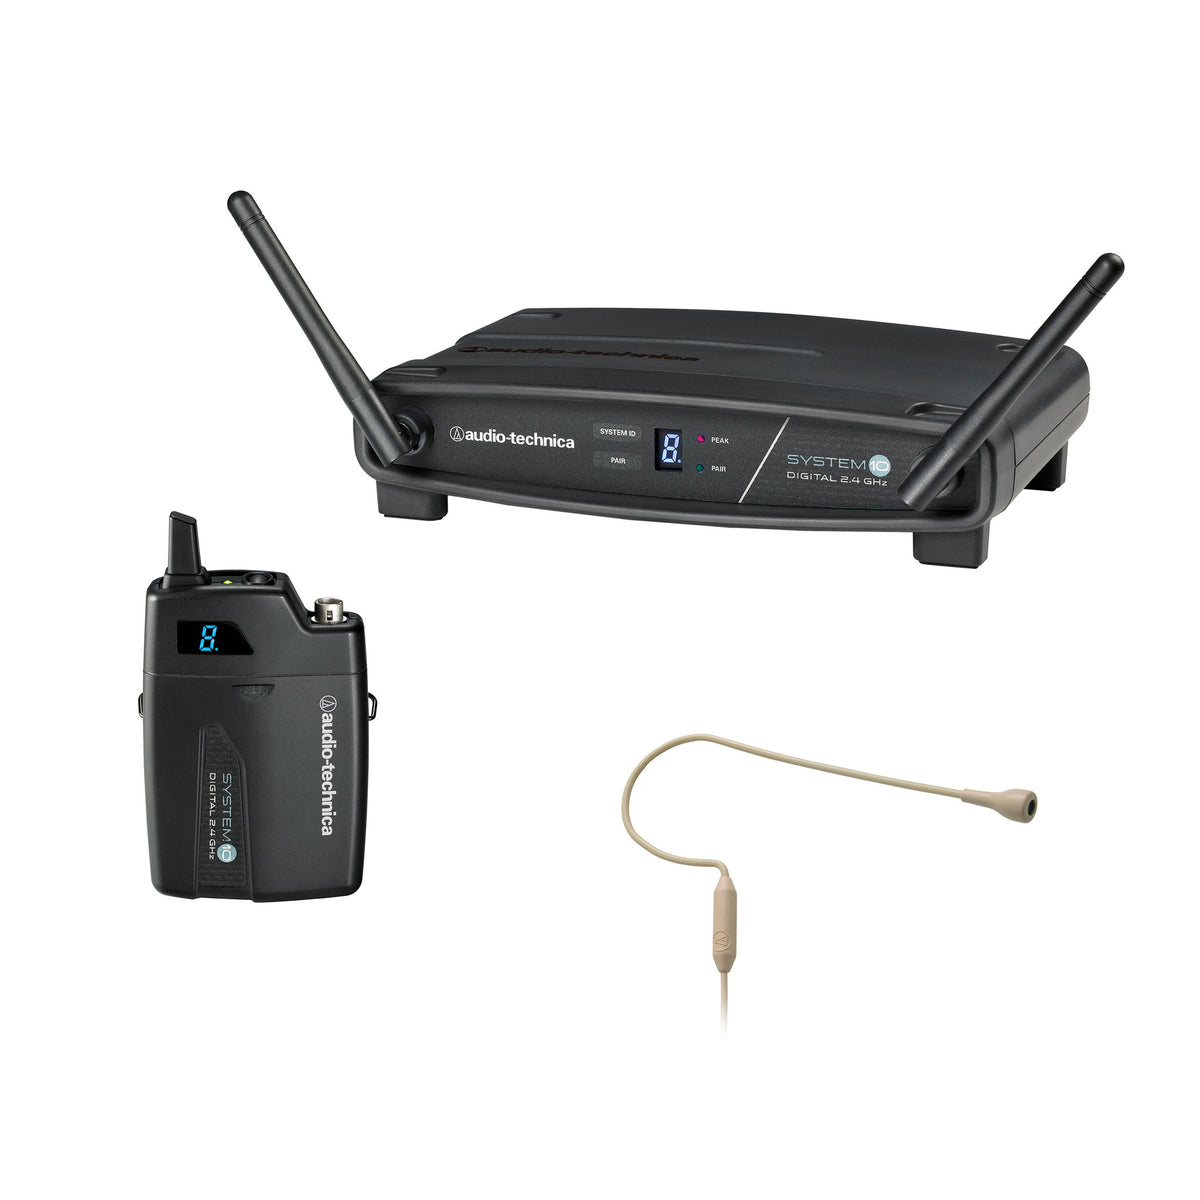 Audio-Technica: ATW-1101/H92-TH System 10 Camera Mount HiFi Digital Wireless System (ATW-R1100, ATW-T1001, PRO 92cW-TH)